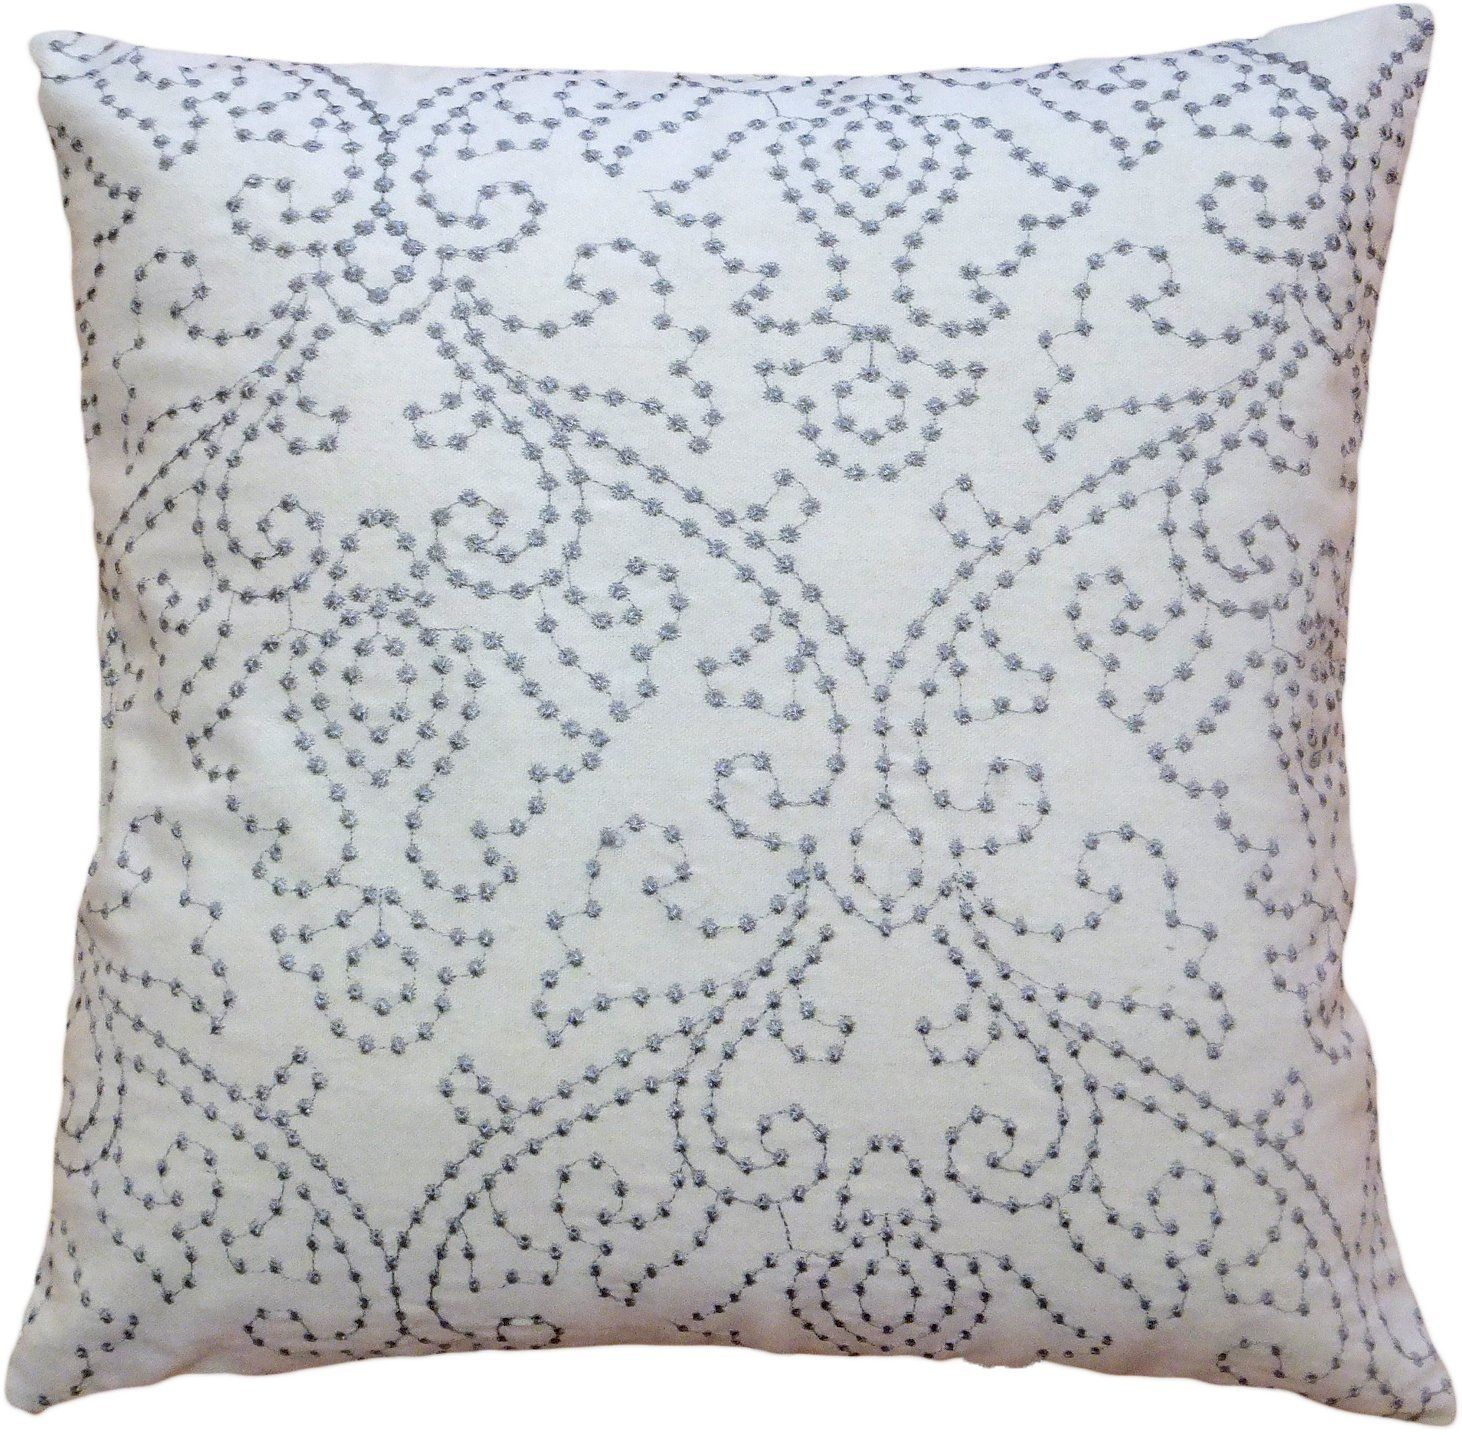 """Amazon.com - Decorative Designer's Embroidery Floral Design with Dots Throw Pillow COVER 18"""" Grey -"""